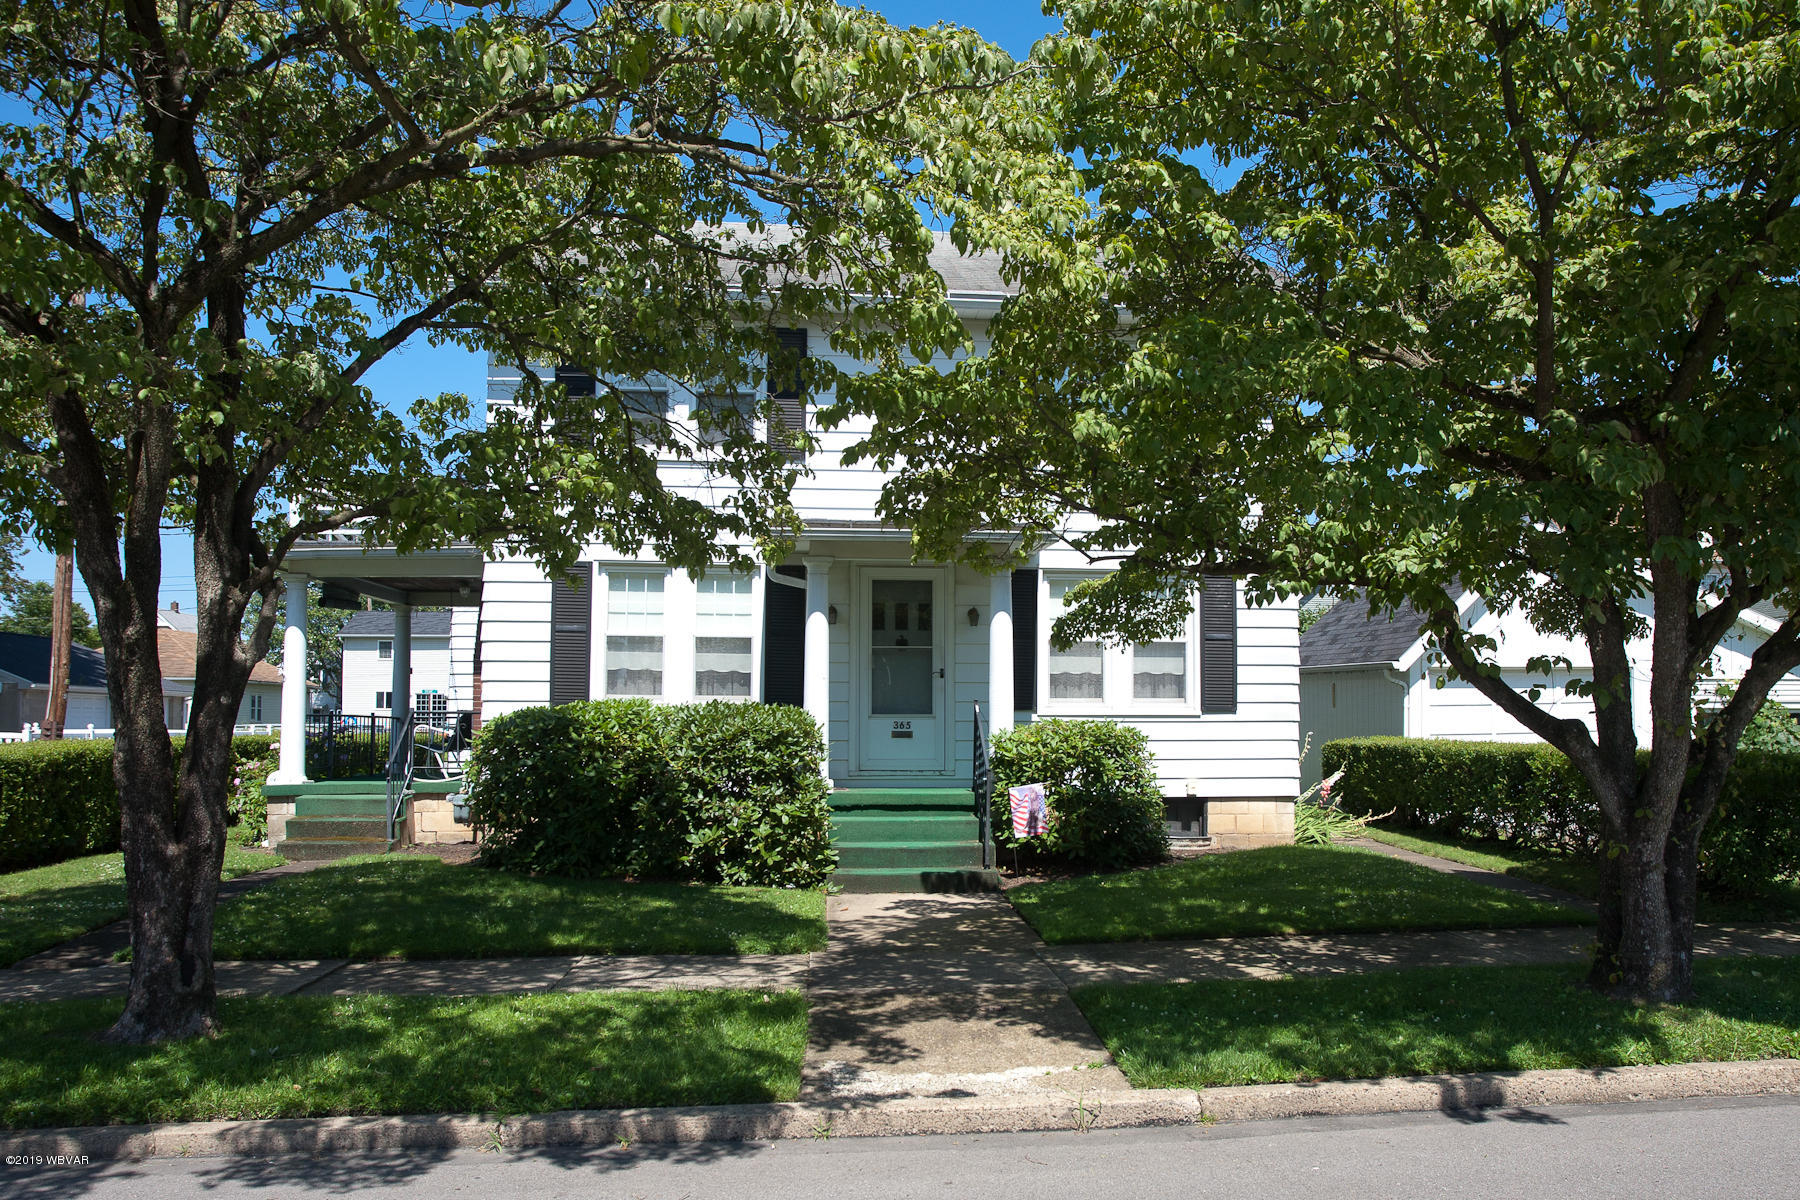 365 PERCY STREET,S. Williamsport,PA 17702,3 Bedrooms Bedrooms,2 BathroomsBathrooms,Residential,PERCY,WB-87998